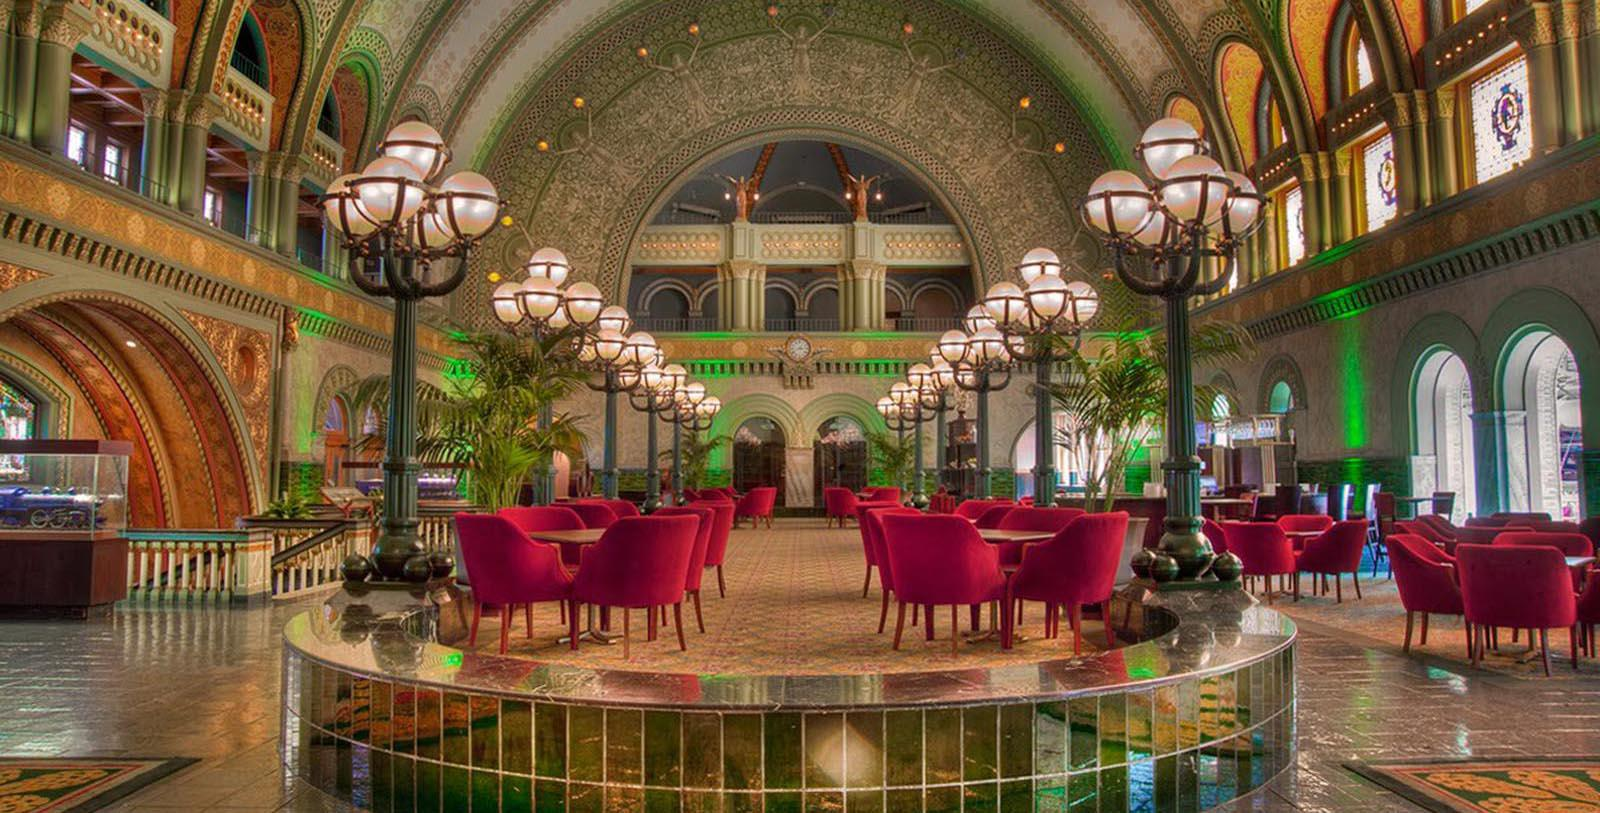 Image of Indoor Seating Area St. Louis Union Station Hotel, Curio Collection by Hilton, 1894, Member of Historic Hotels of America, in St. Louis, Missouri, Explore